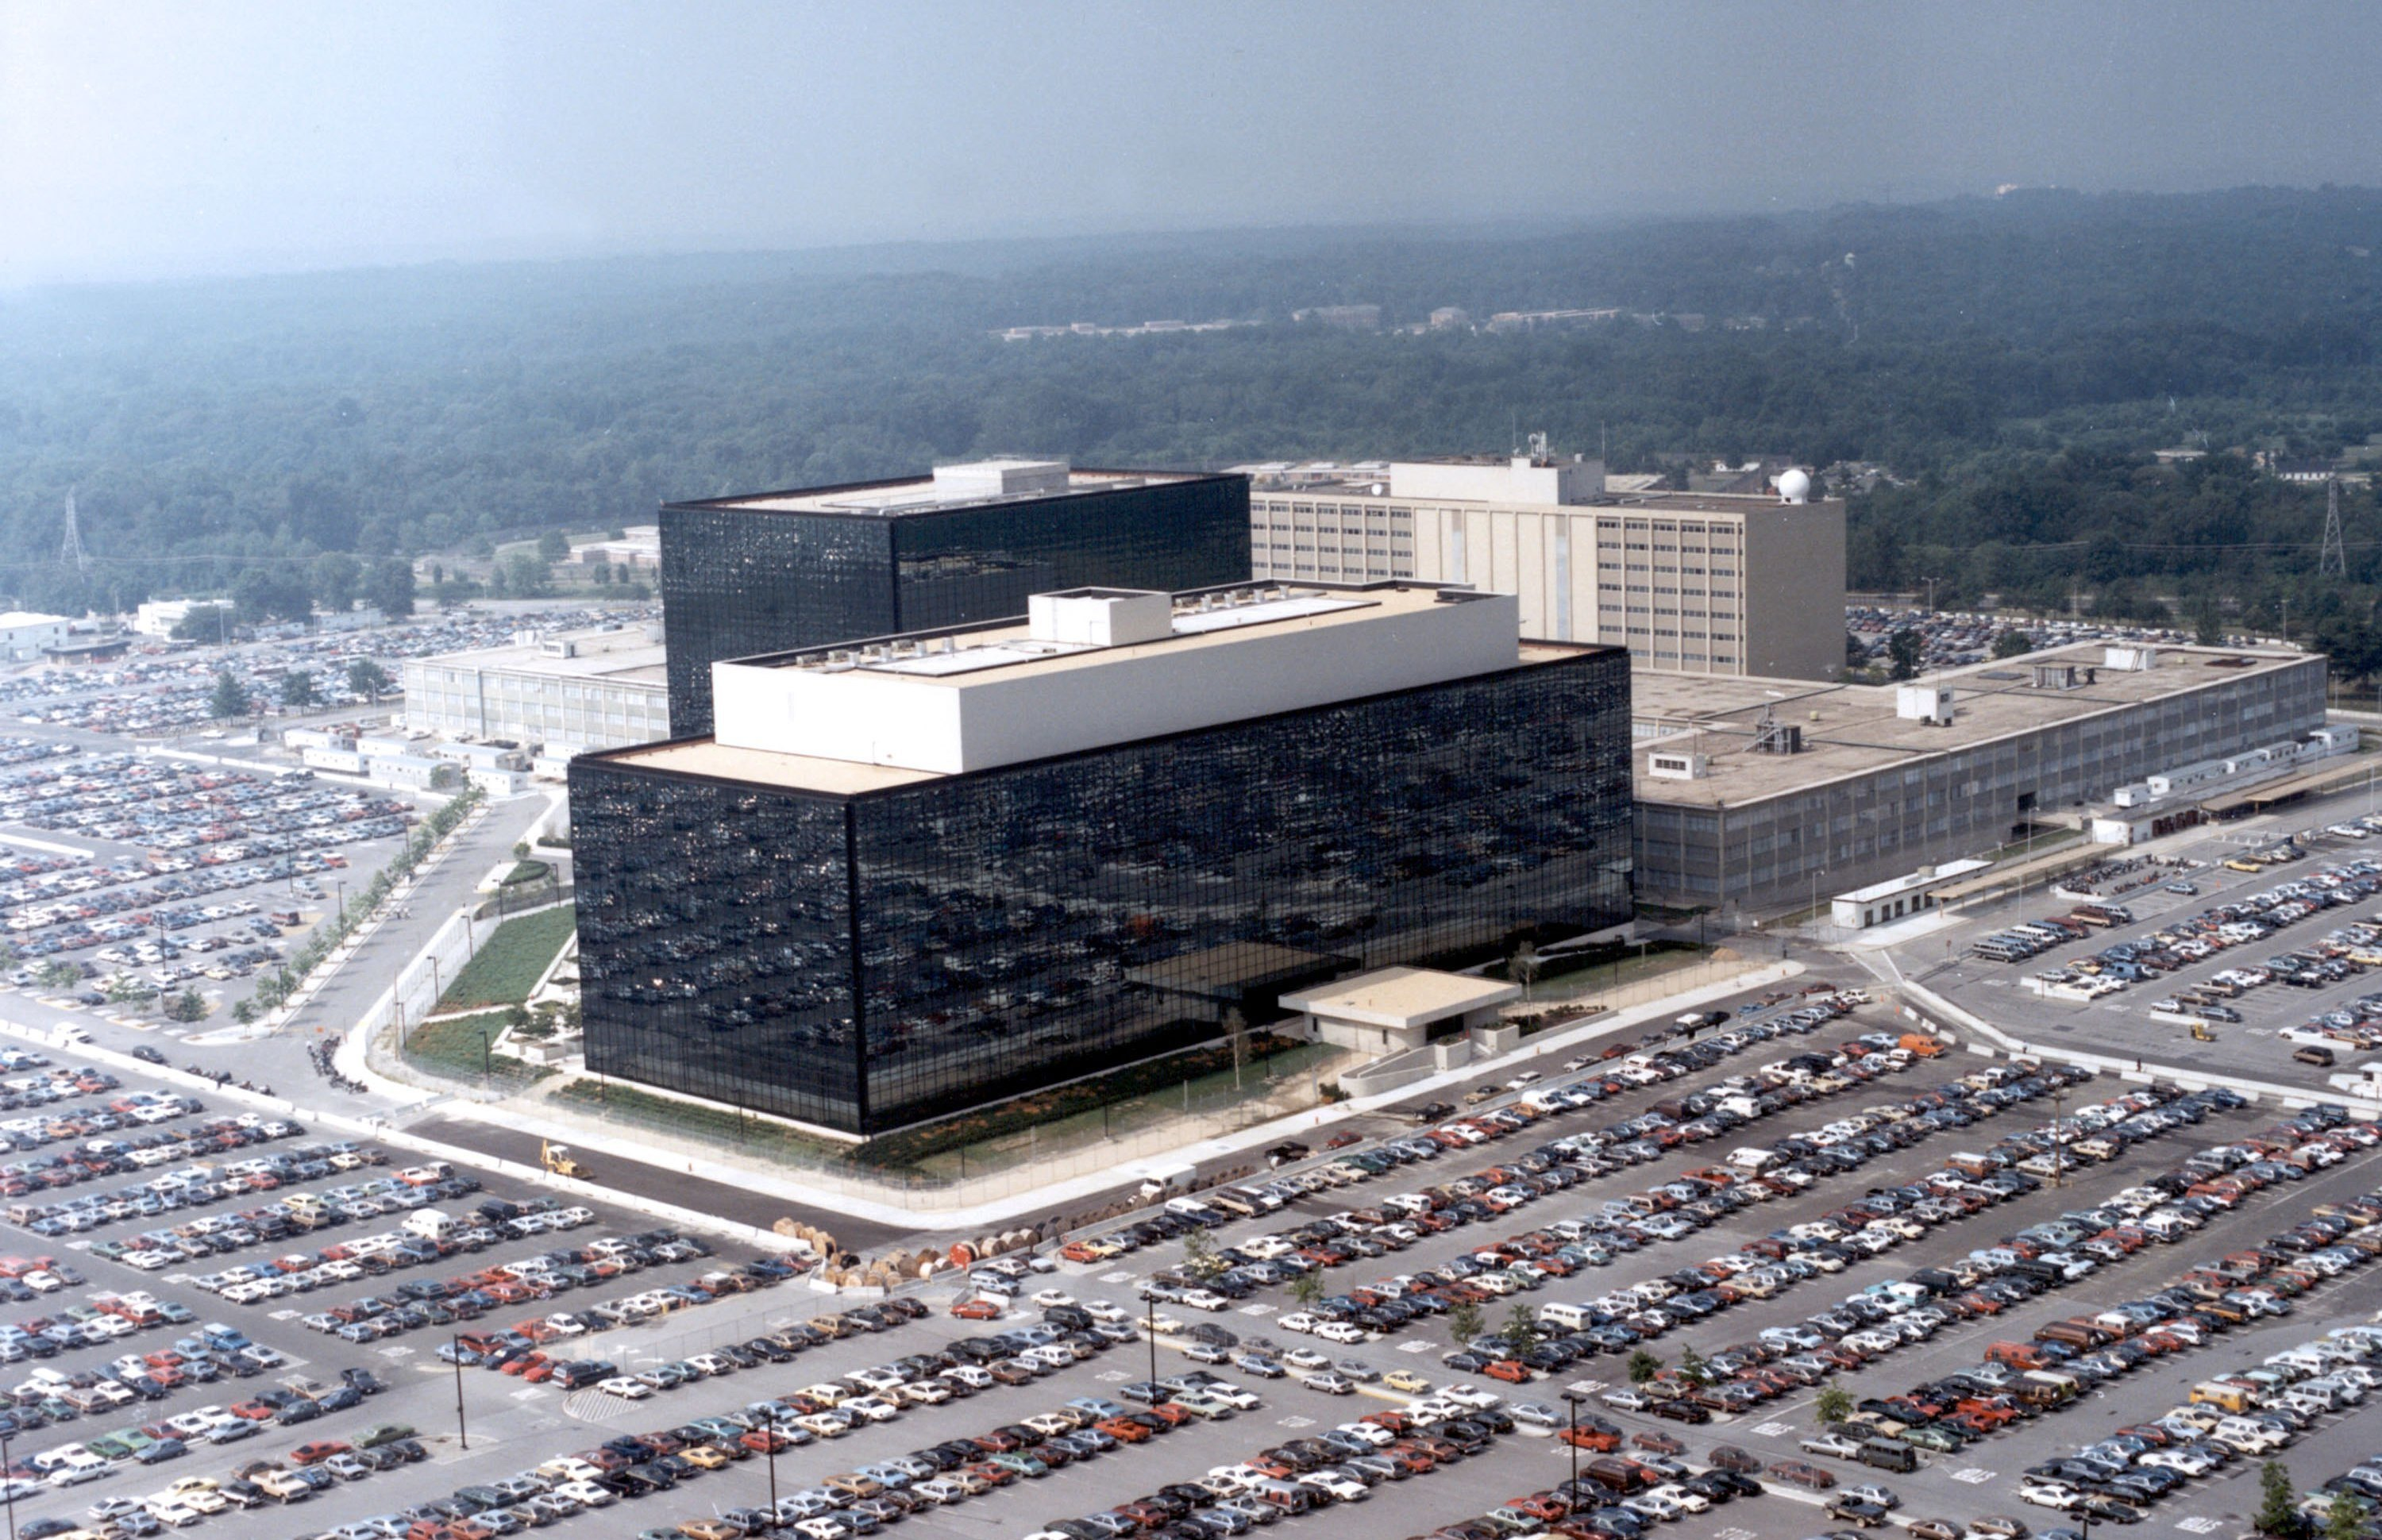 Russian Cybersecurity Firm Says It Is a 'Pawn' in US Conflict